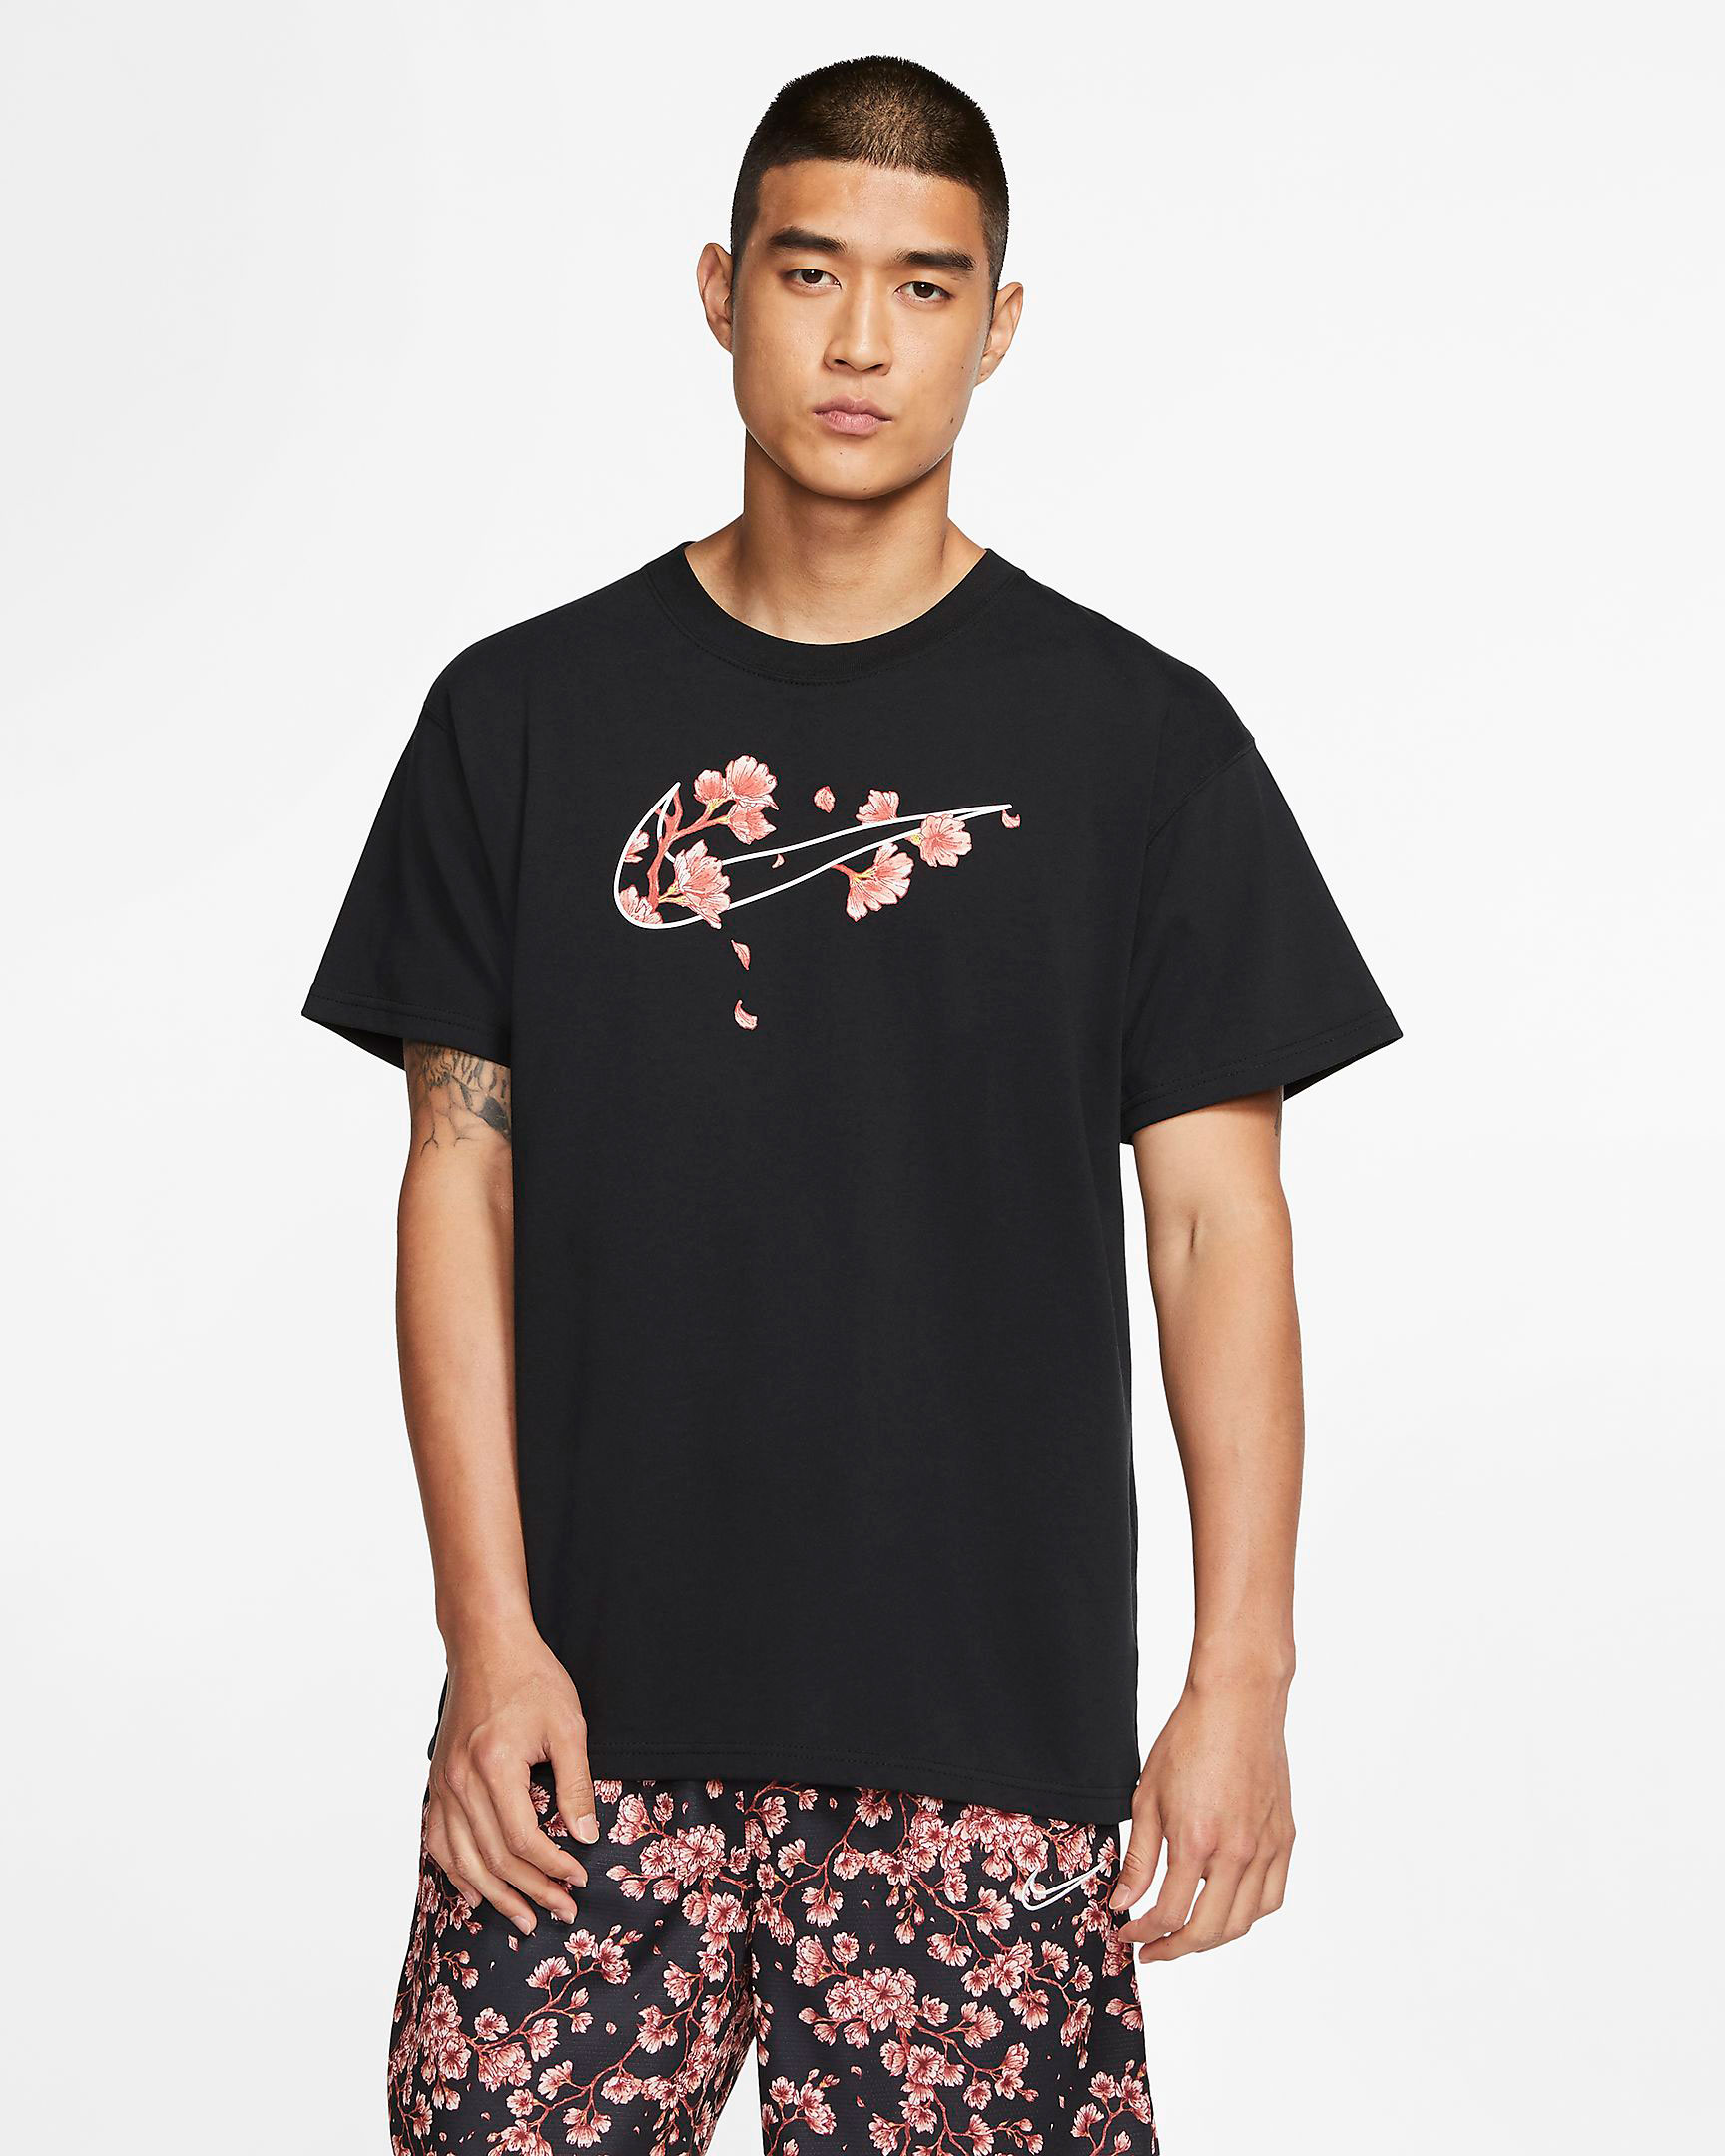 nike-cherry-blossoms-shirt-1